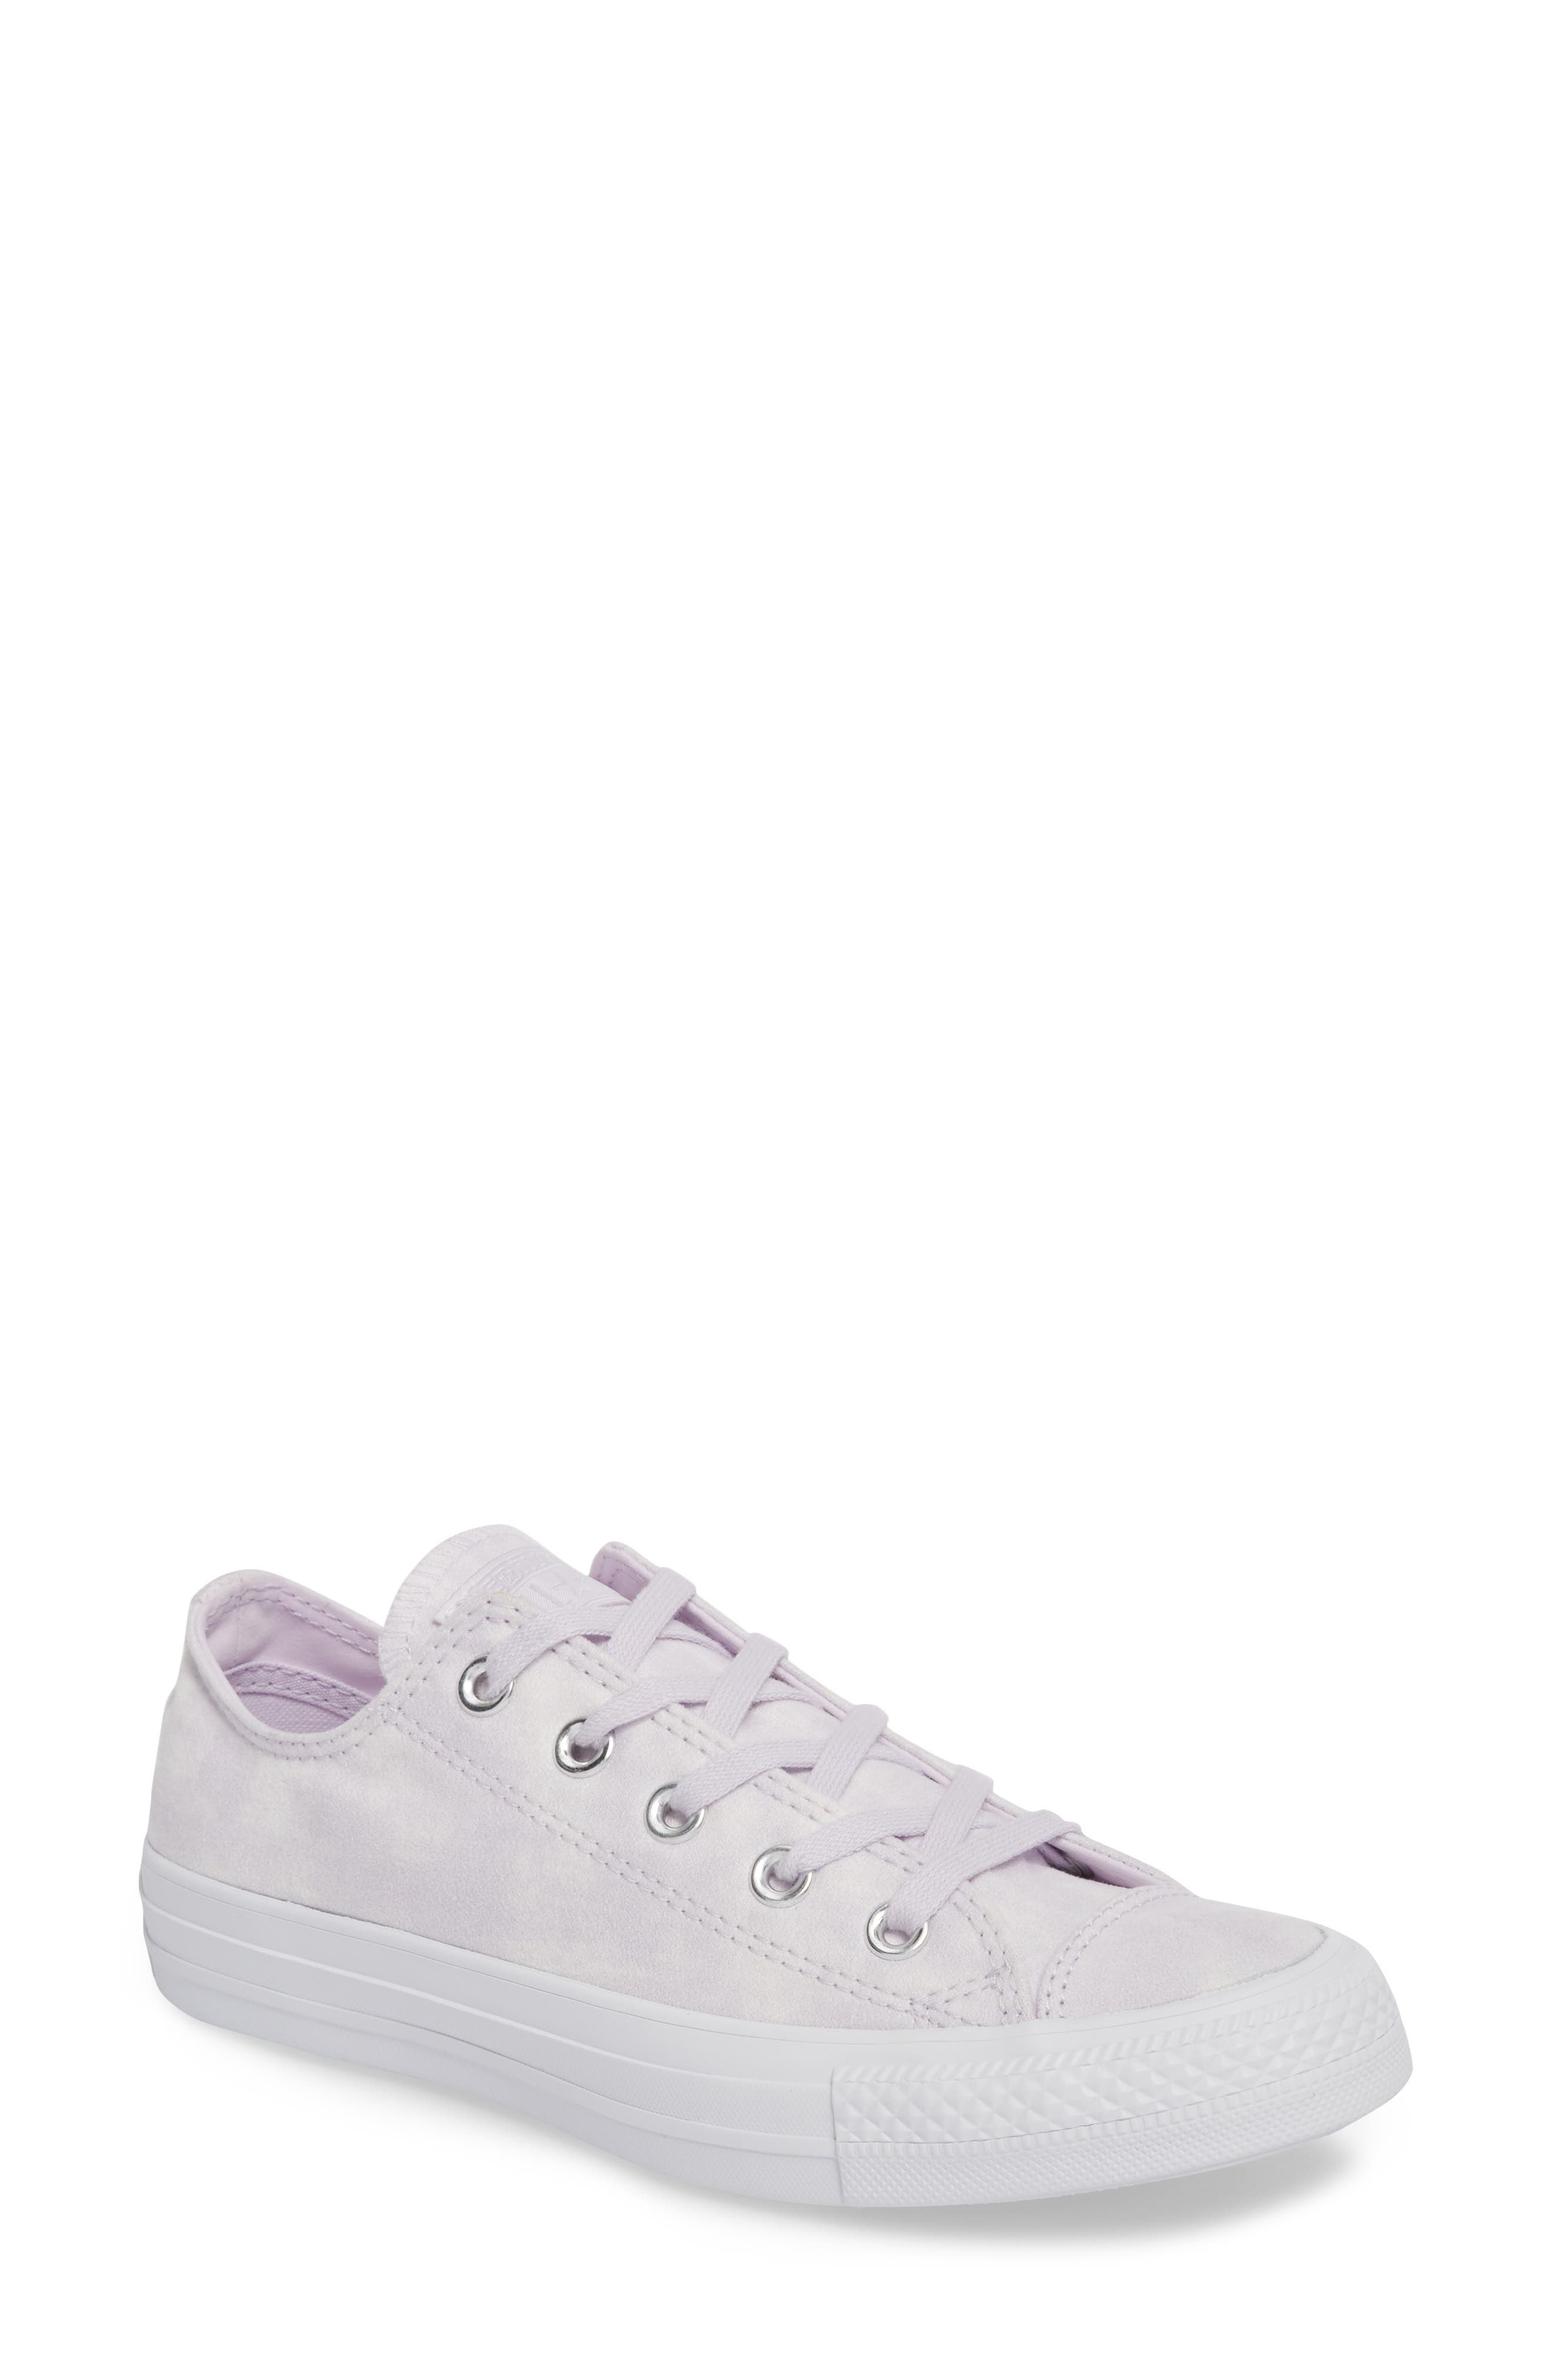 Chuck Taylor<sup>®</sup> All Star<sup>®</sup> Peached Low Top Sneaker,                             Main thumbnail 2, color,